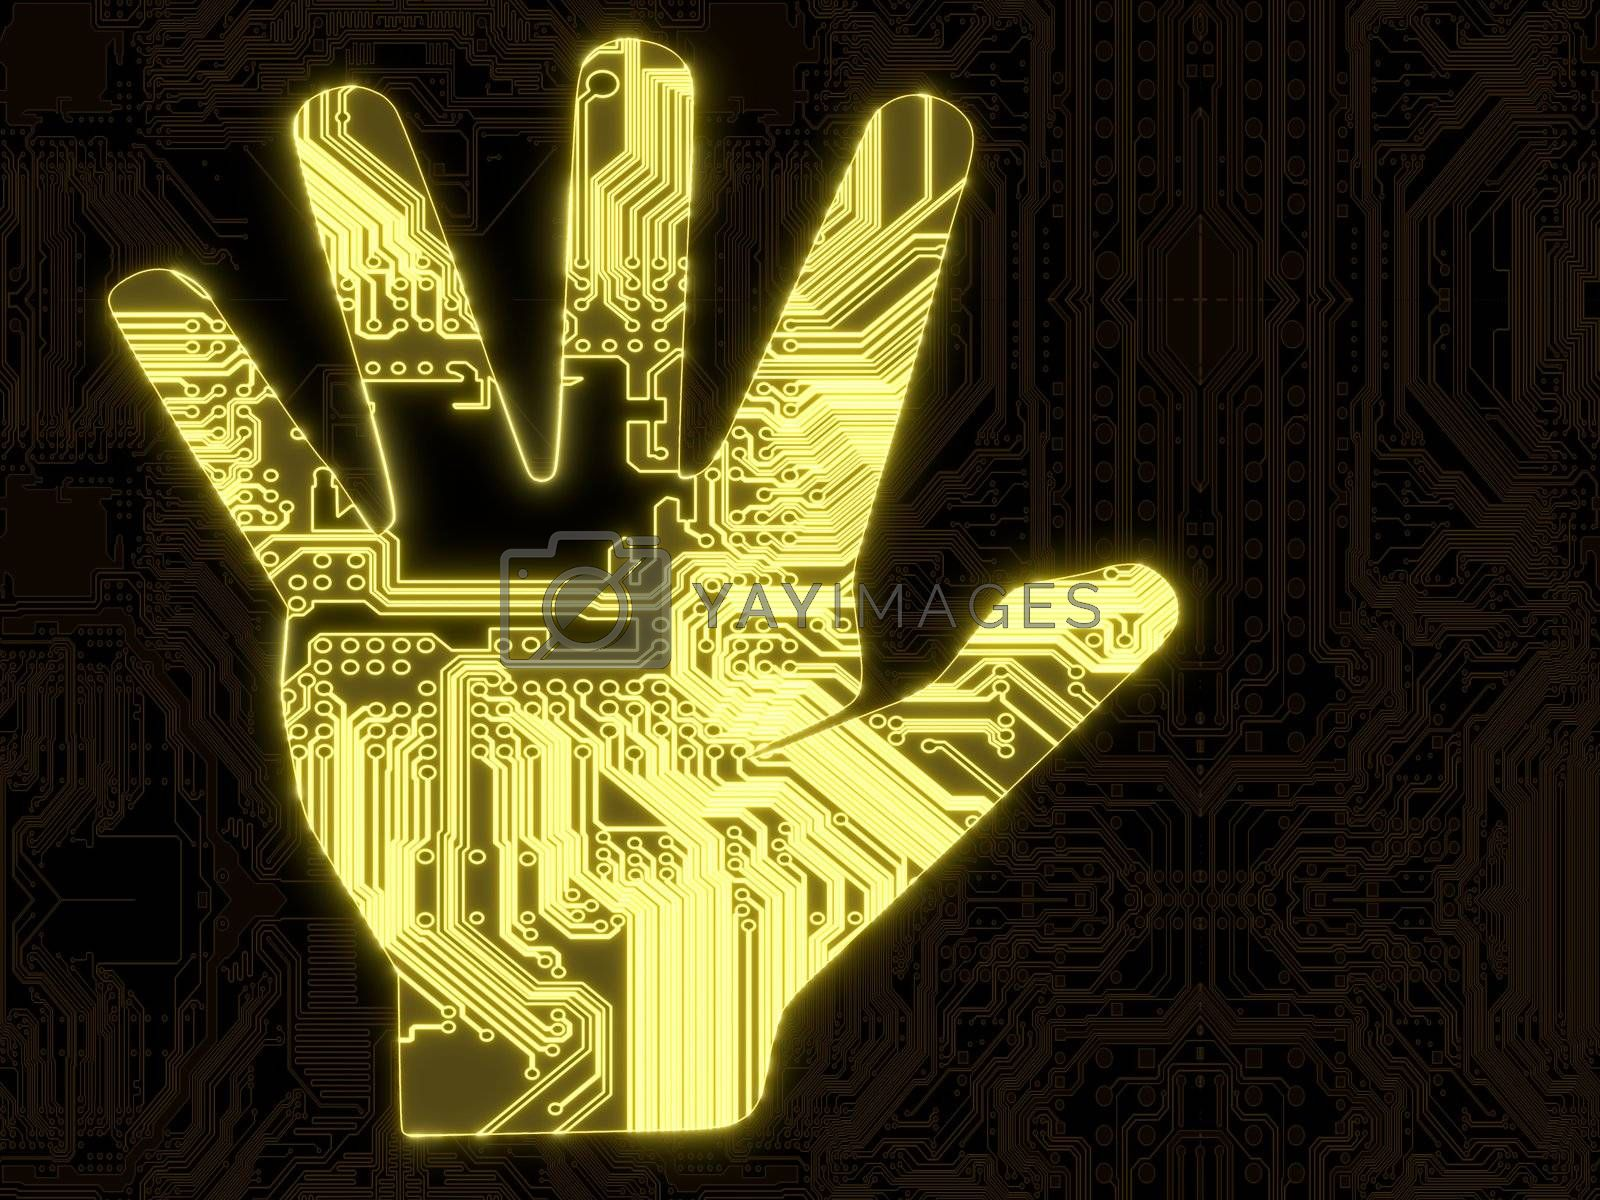 3D Graphic flare attention hand symbol in a dark background on a computer chip